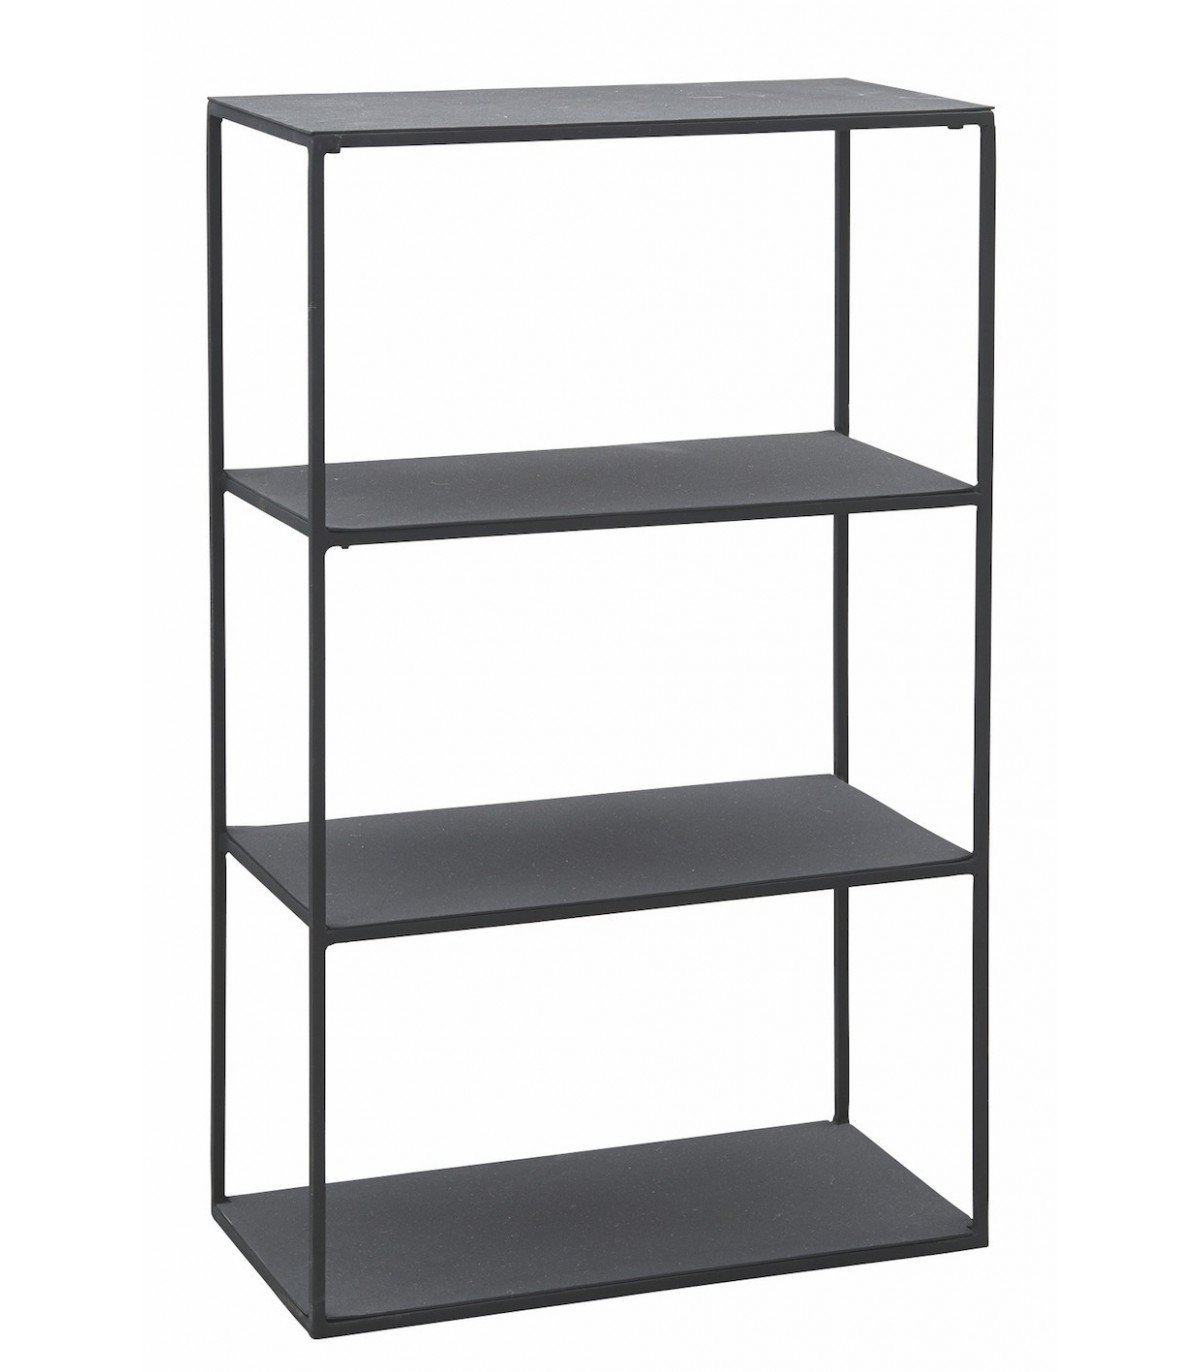 Etag re m tal noir b house doctor - Etagere metal design ...